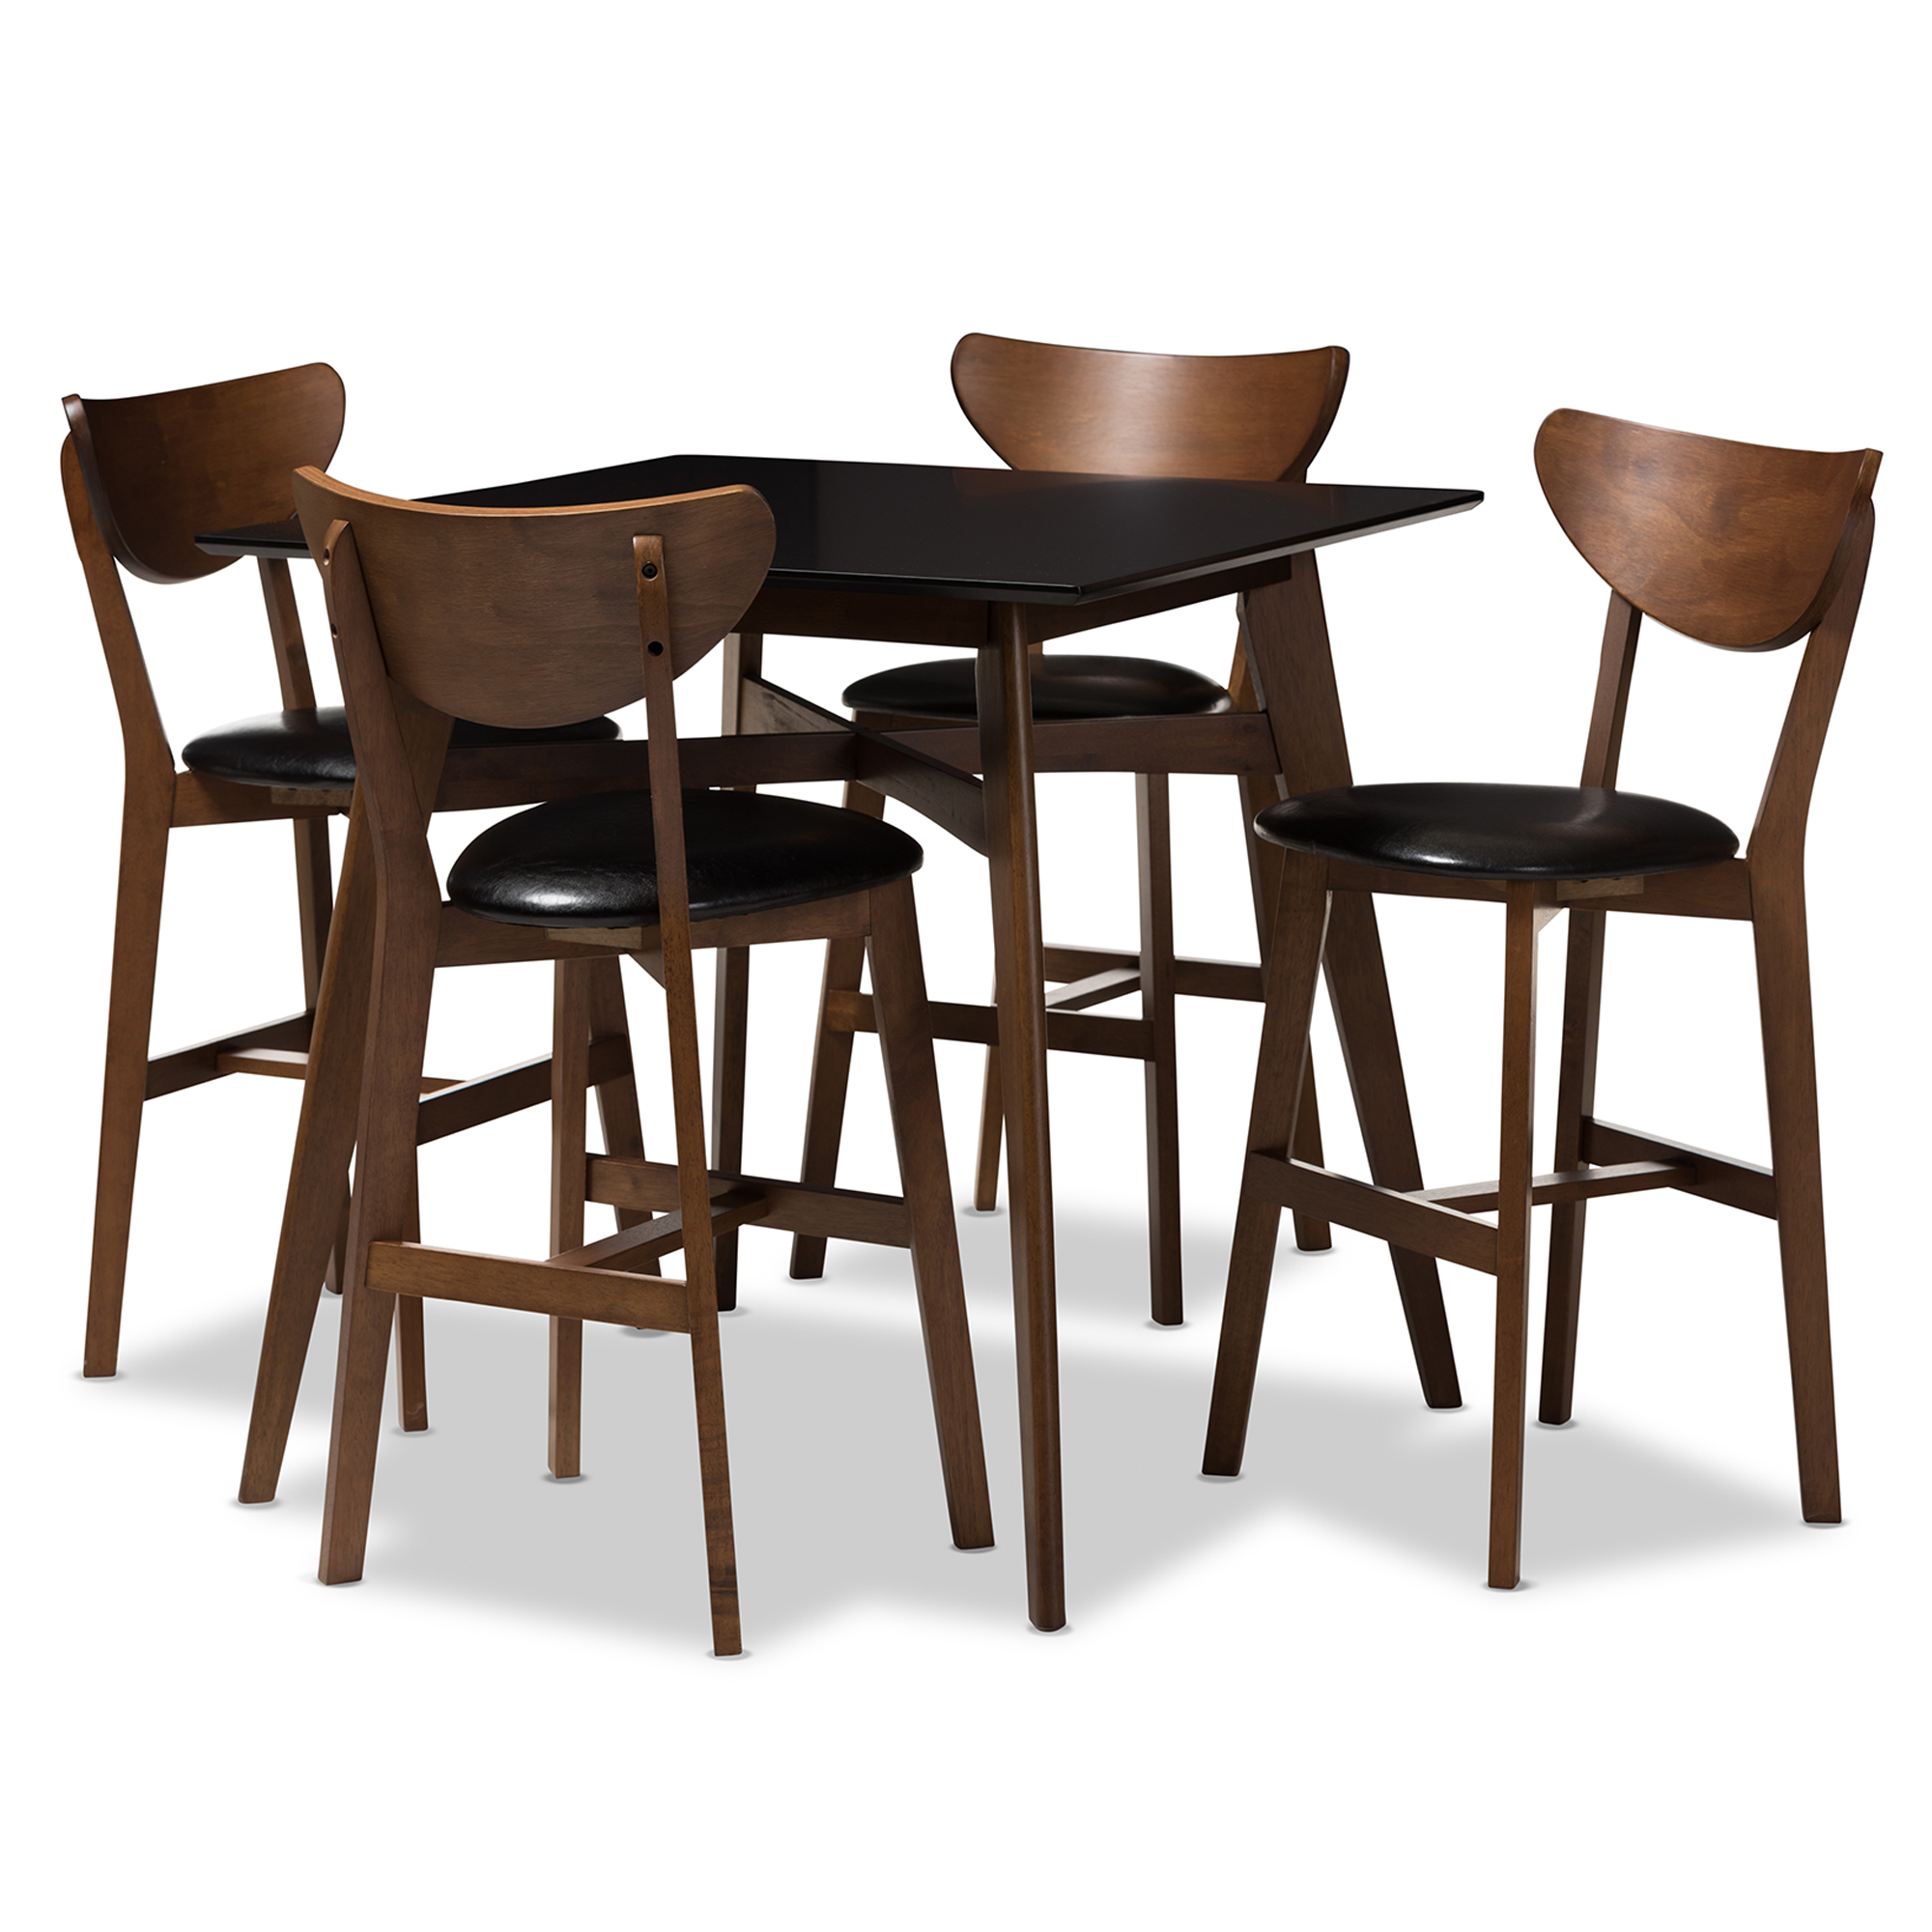 Baxton Studio Eline Mid-Century Modern Black Faux Leather Upholstered Walnut Finished 5-Piece  sc 1 st  Baxton Studio & Bar Table Sets | Bar Furniture | Affordable Modern Design | Baxton ...